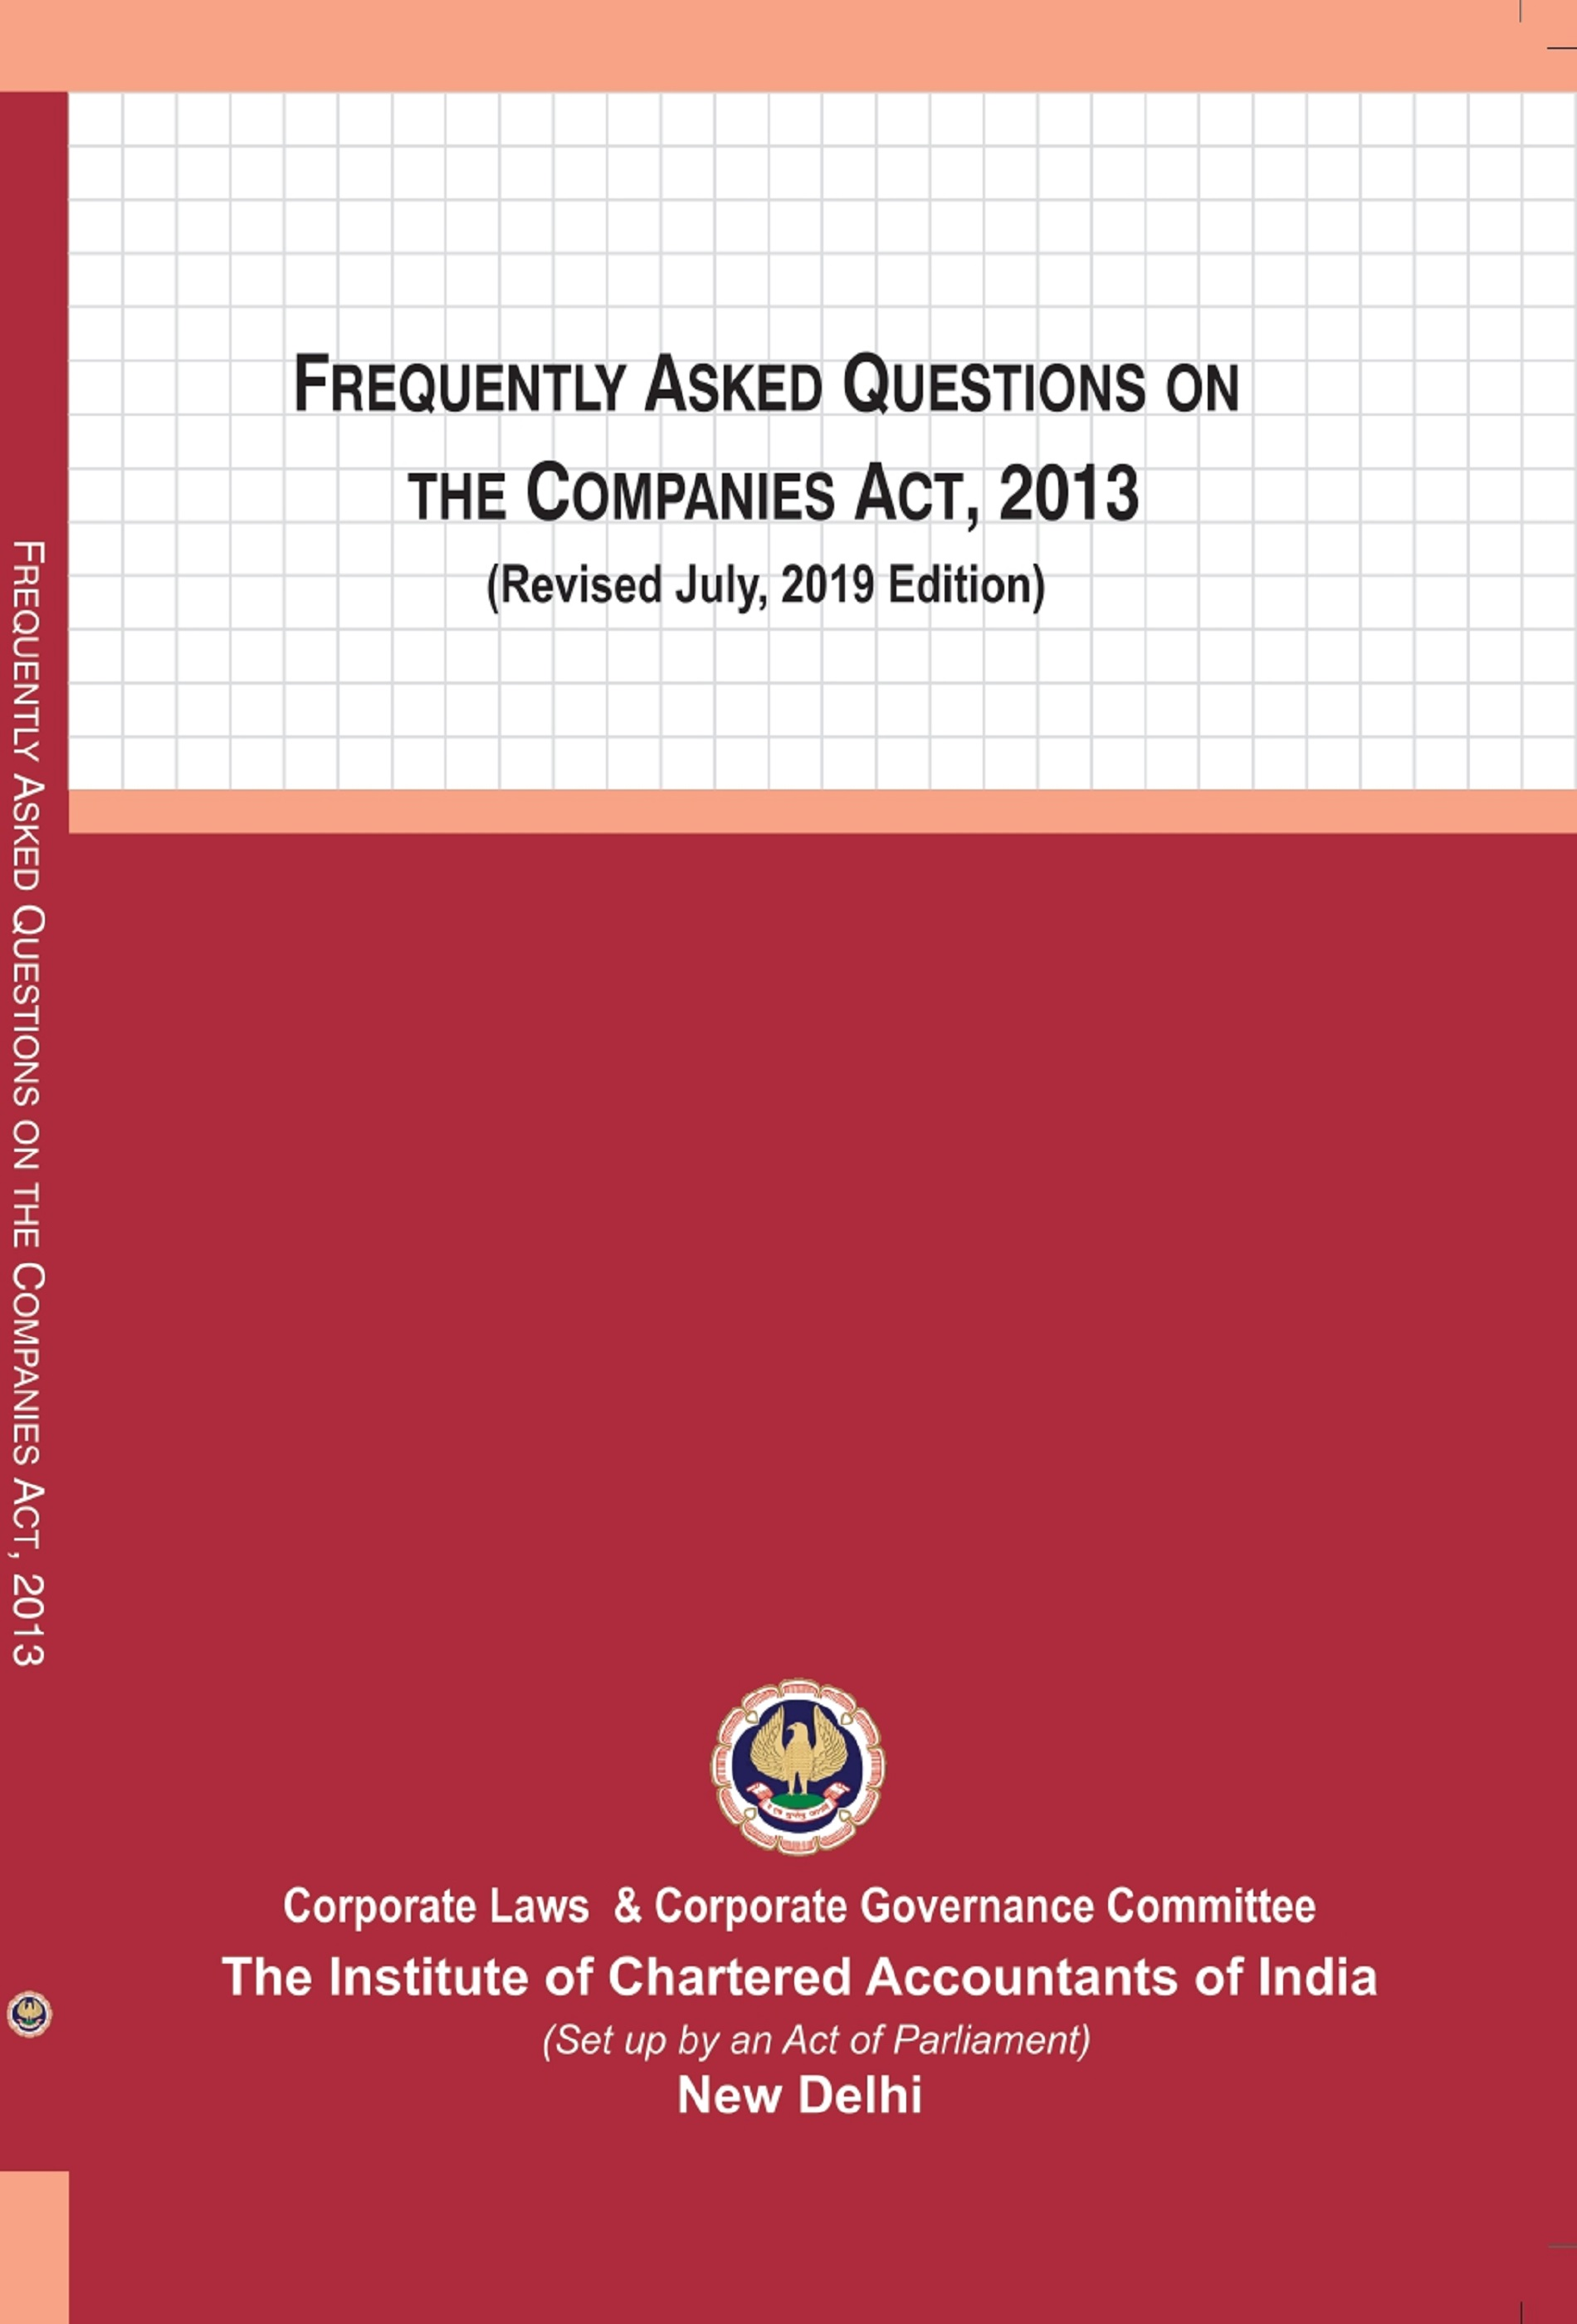 Frequently Asked Questions on The Companies Act, 2013 (Revised July, 2019 Edition)